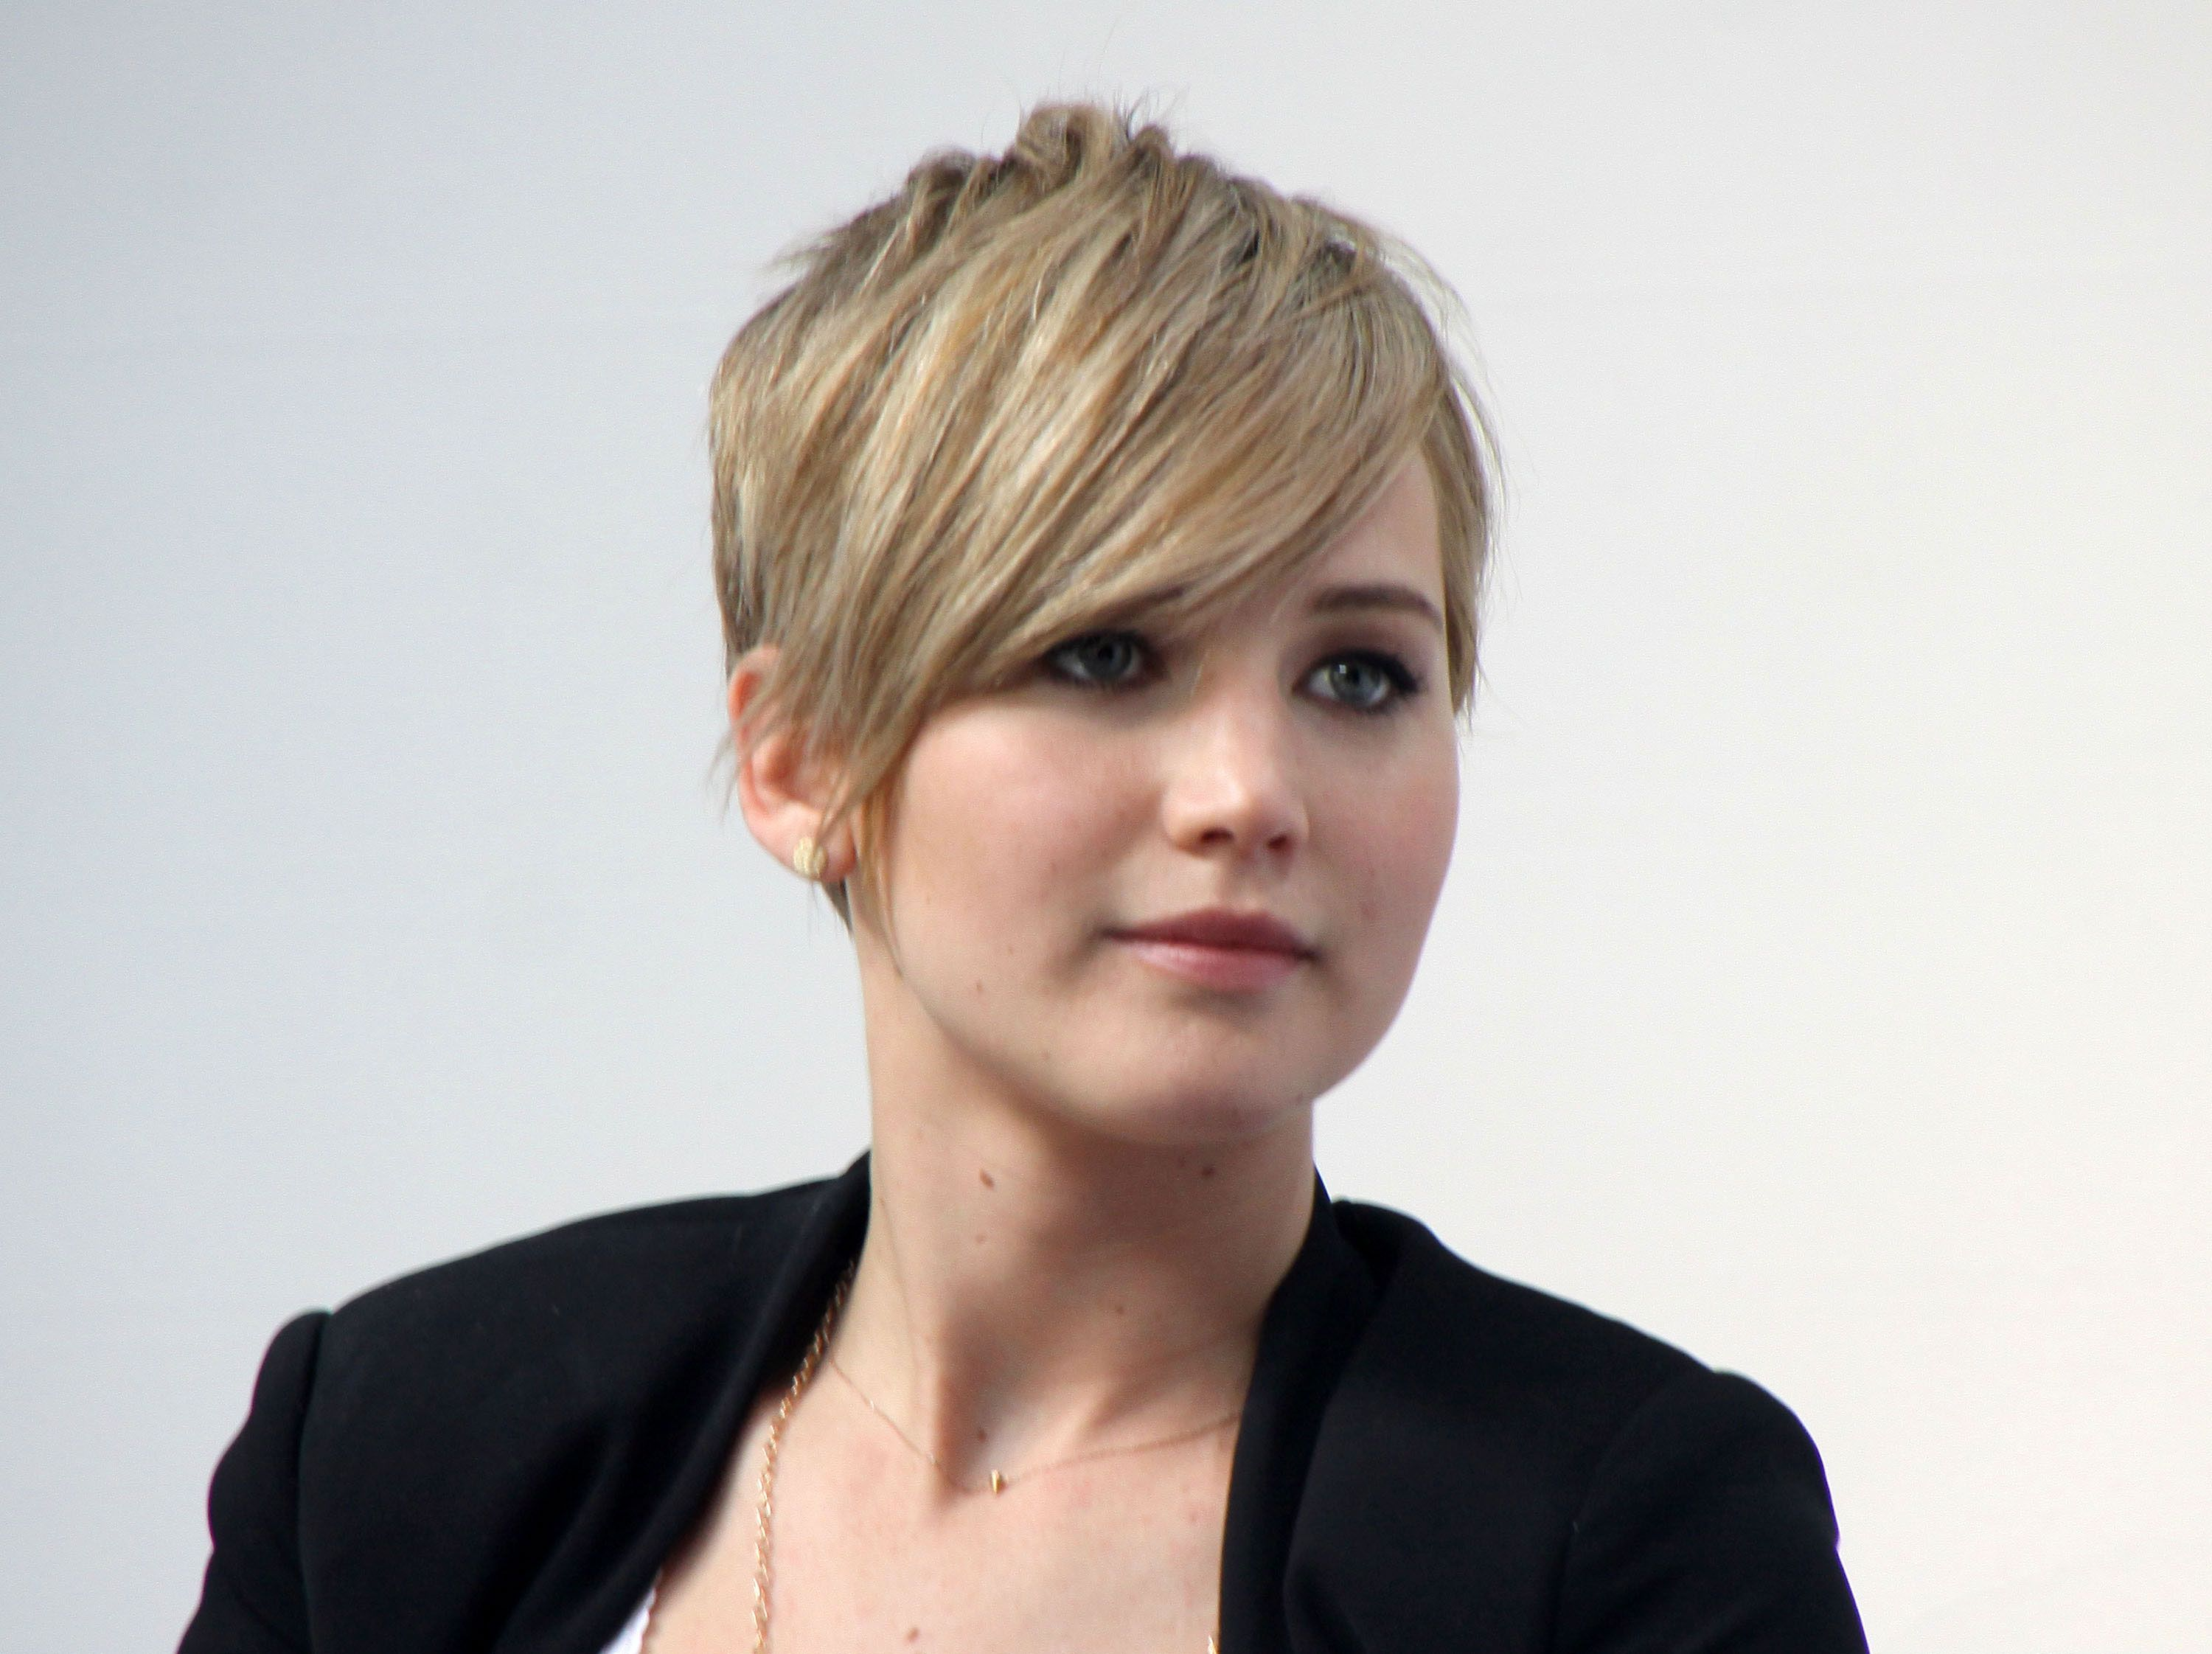 The Reason for J.Law's Pixie Cut Is Simple -- The Cut